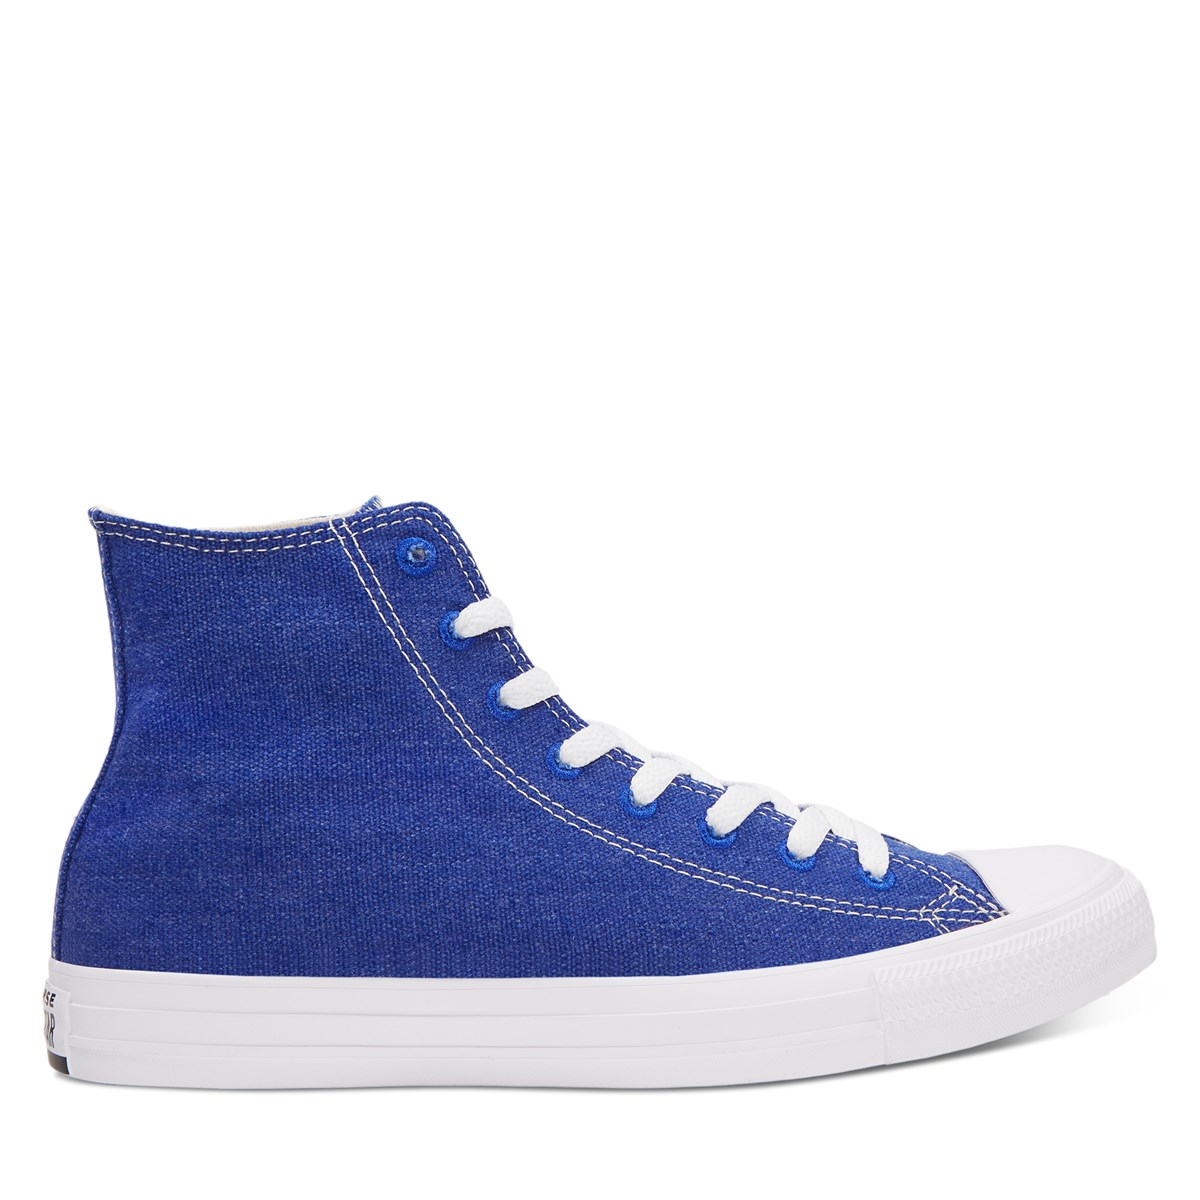 Women's Chuck Taylor All Star CLC Renew Sneakers in Blue